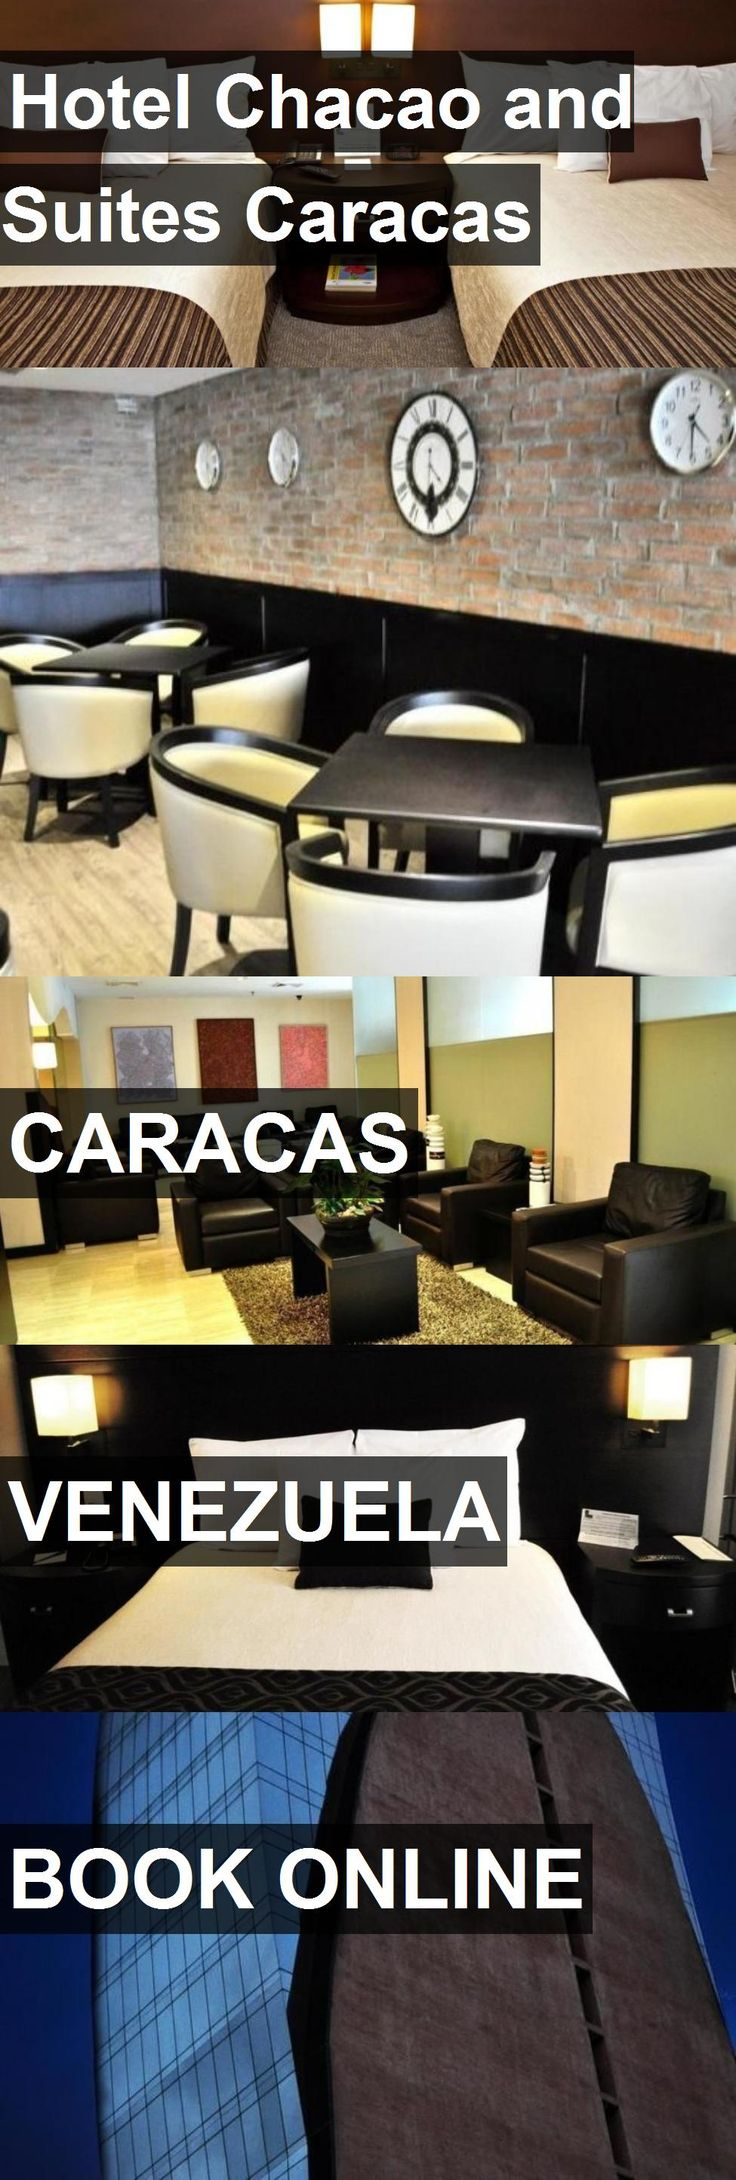 Hotel Chacao and Suites Caracas in Caracas, Venezuela. For more information, photos, reviews and best prices please follow the link. #Venezuela #Caracas #travel #vacation #hotel